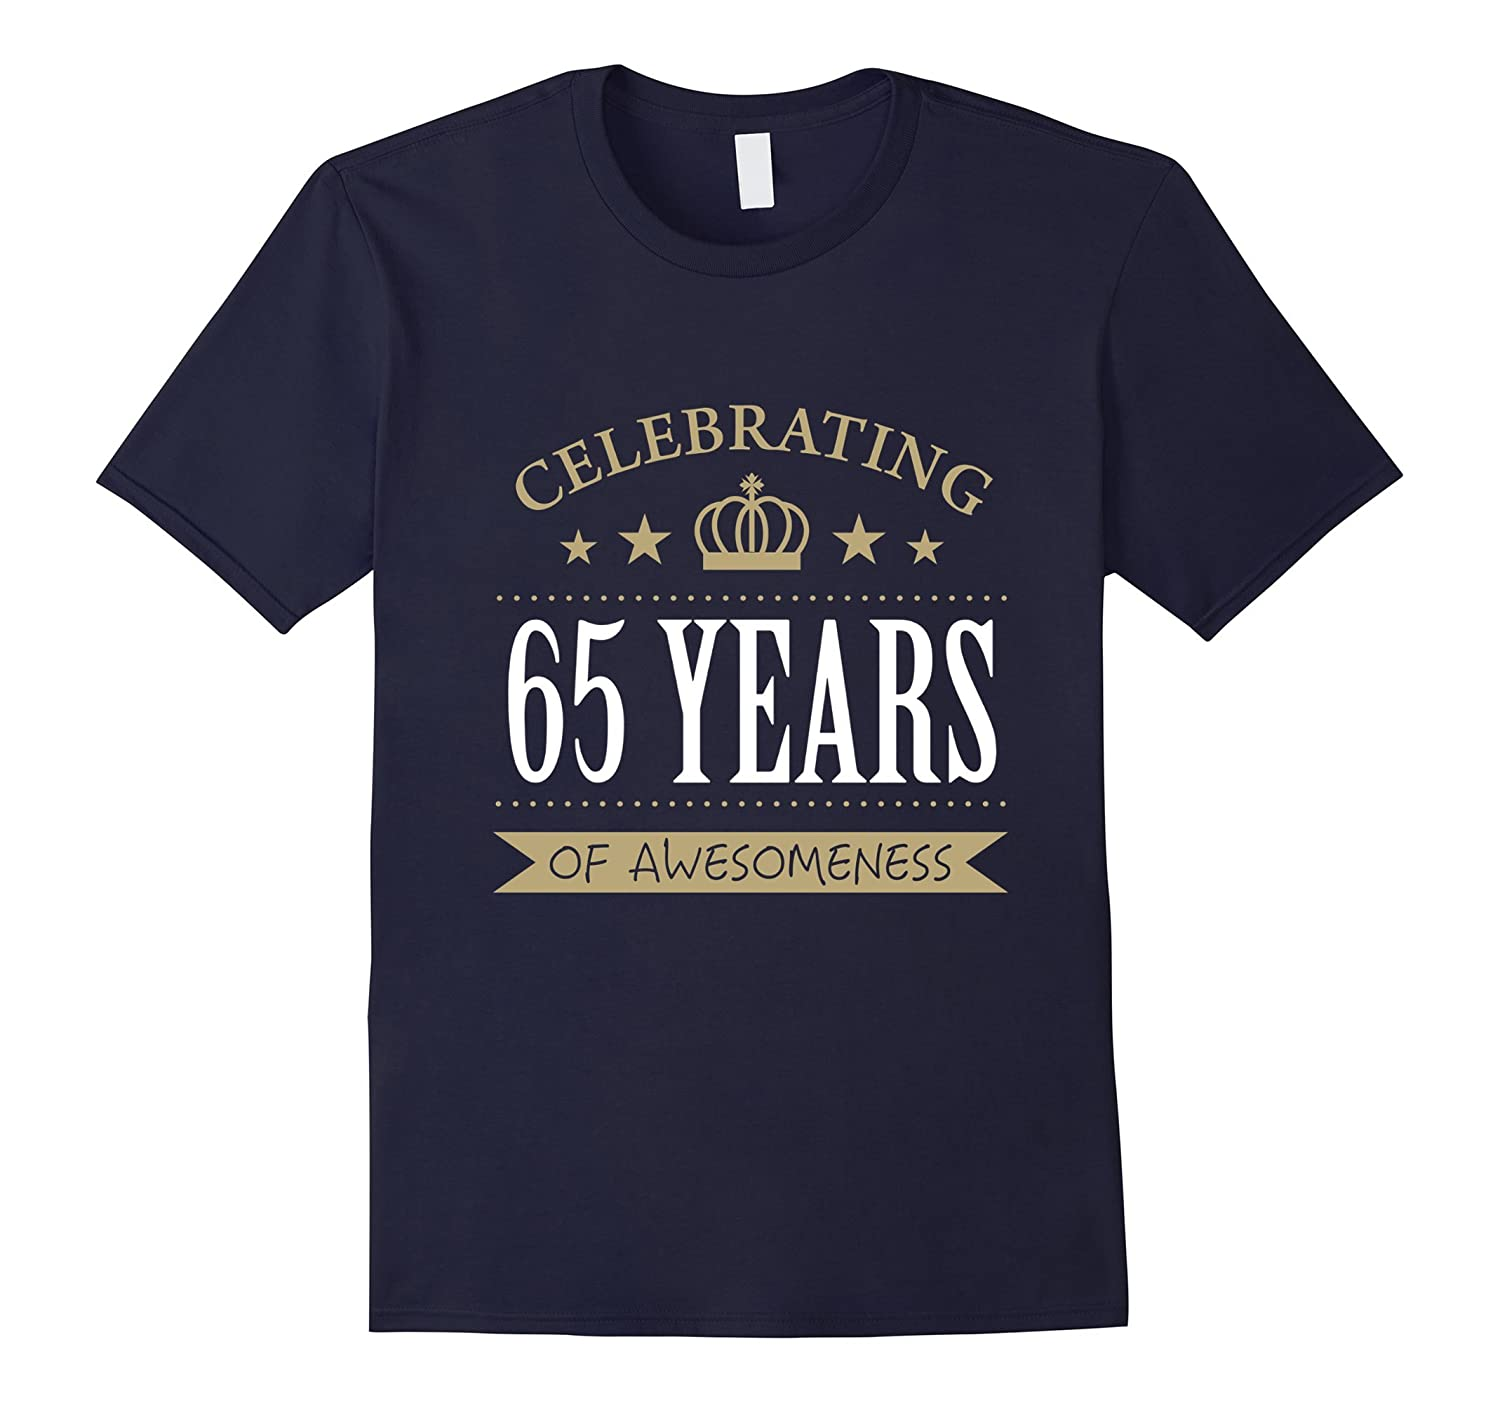 65th Birthday gift shirt 65 years of awesomeness-TH